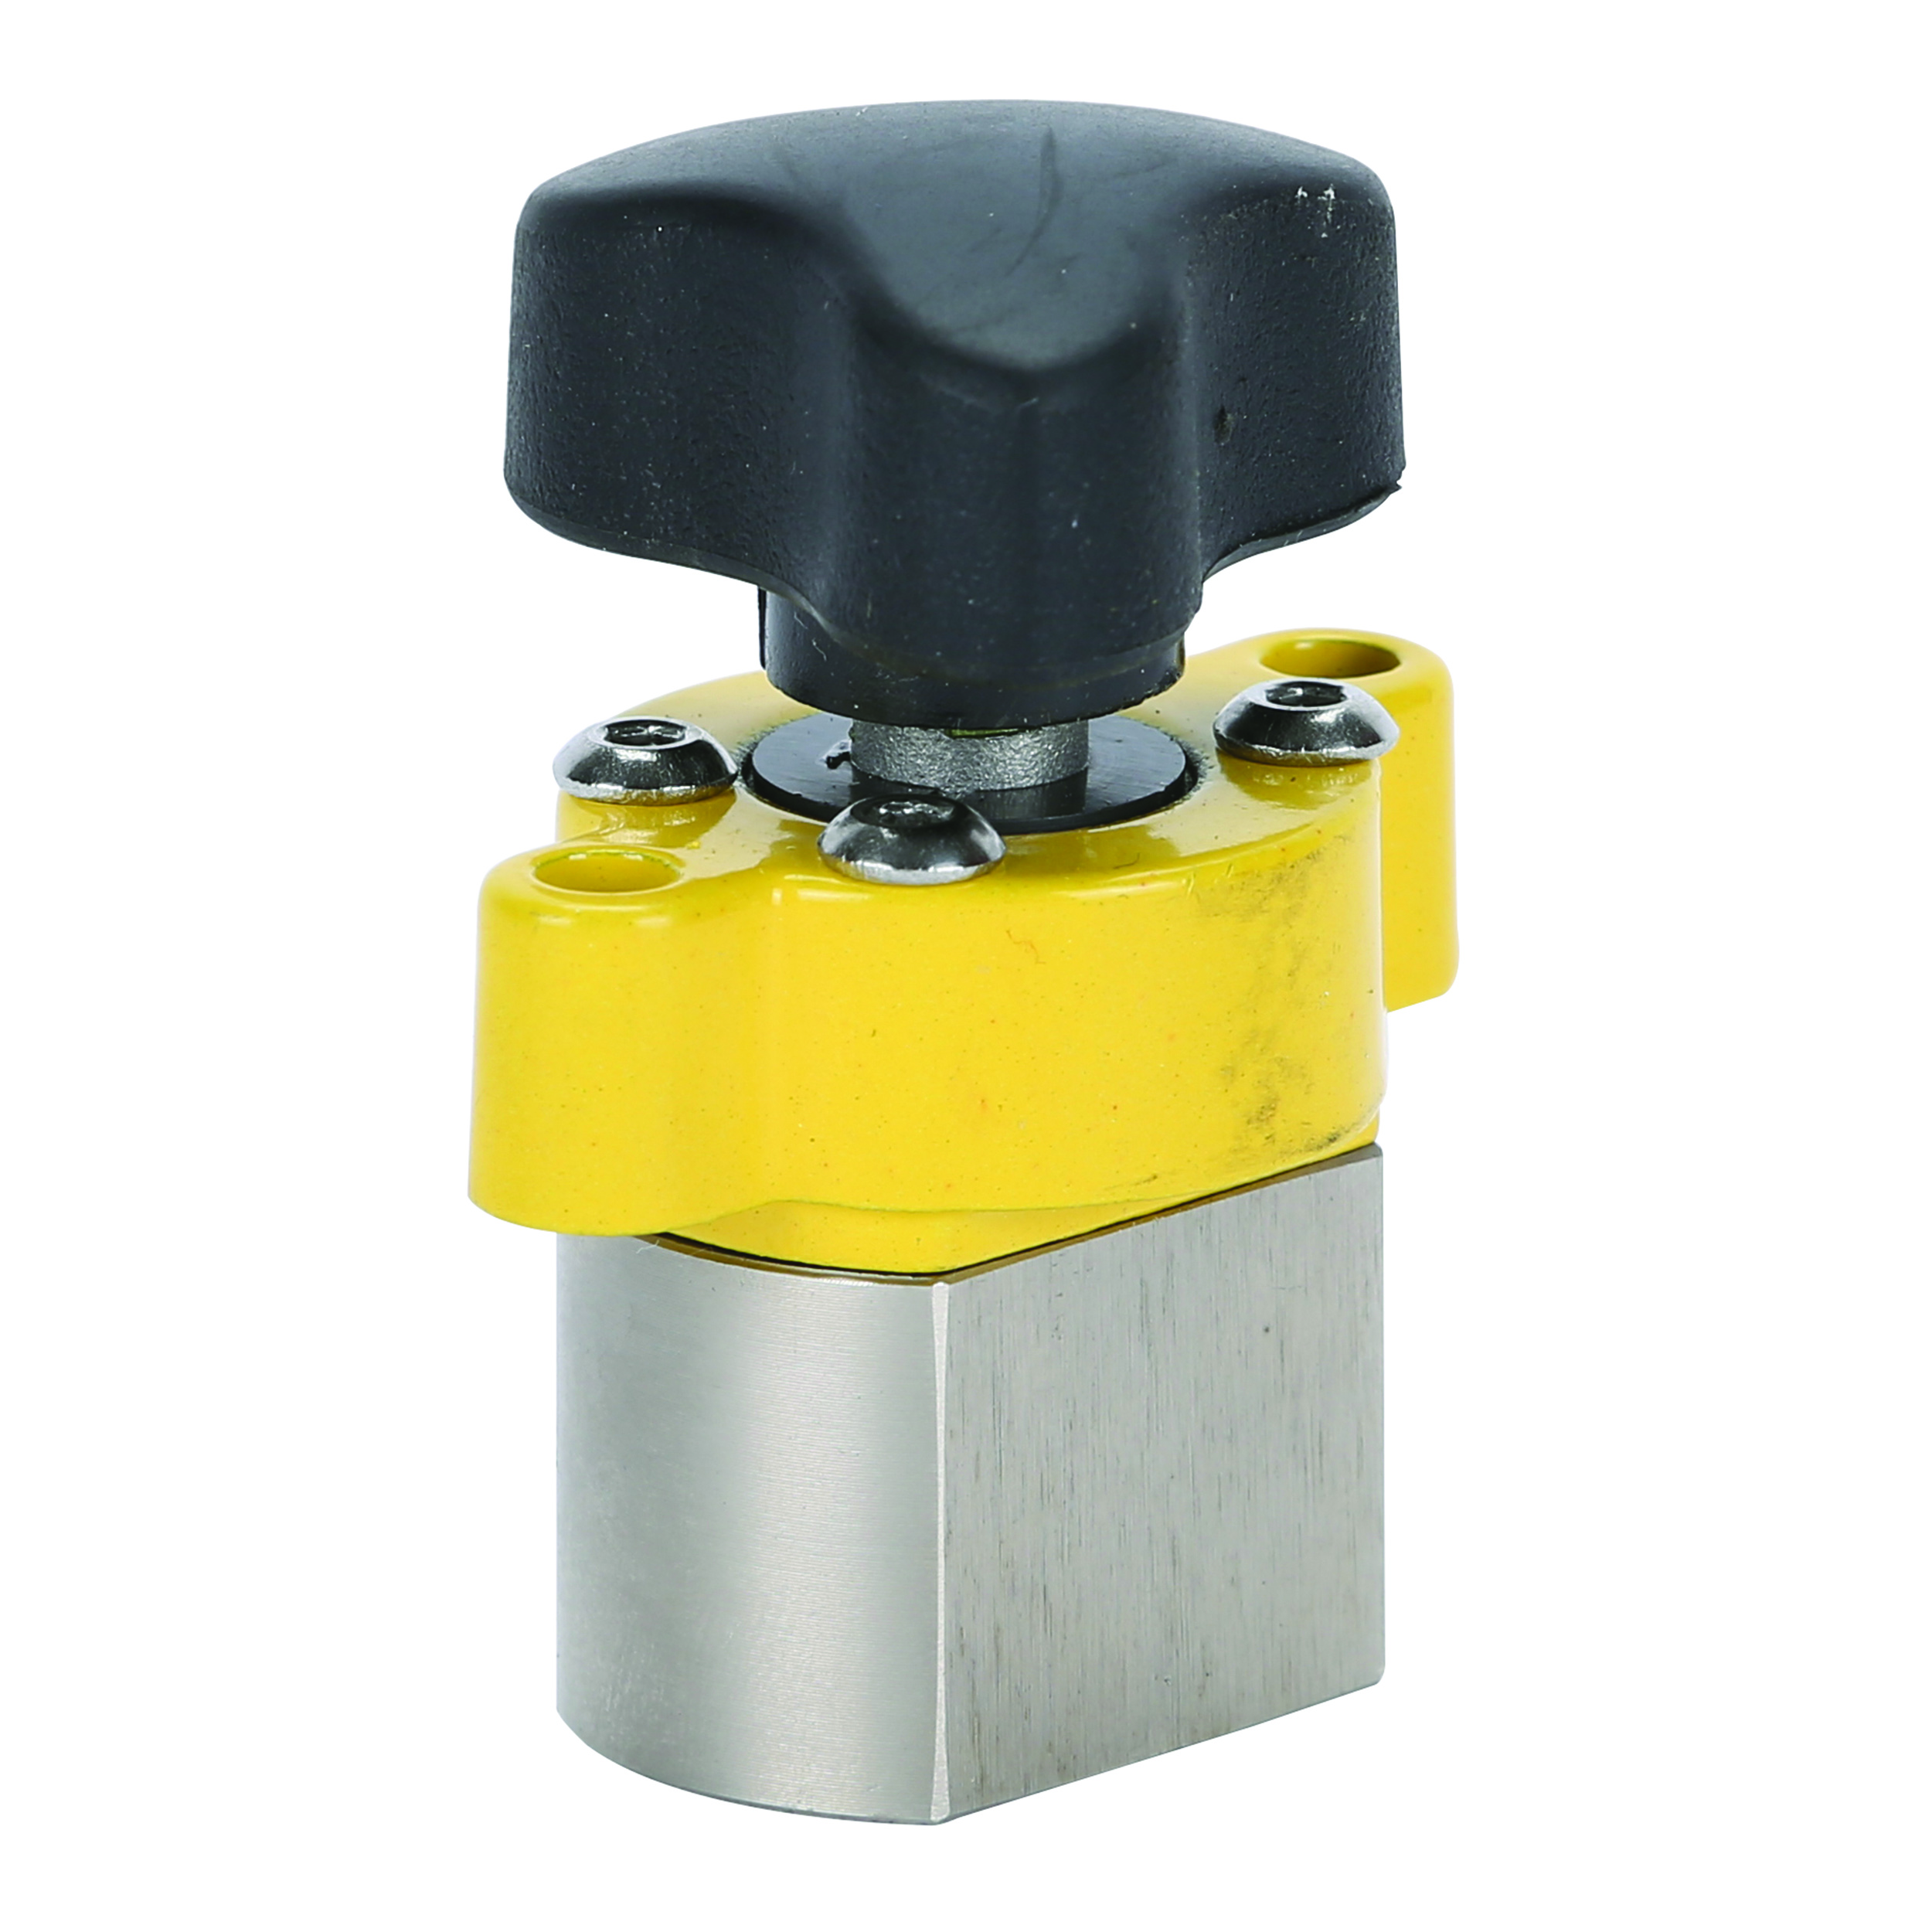 MagJig 60 Switchable Magnet For Jigs and Fixtures